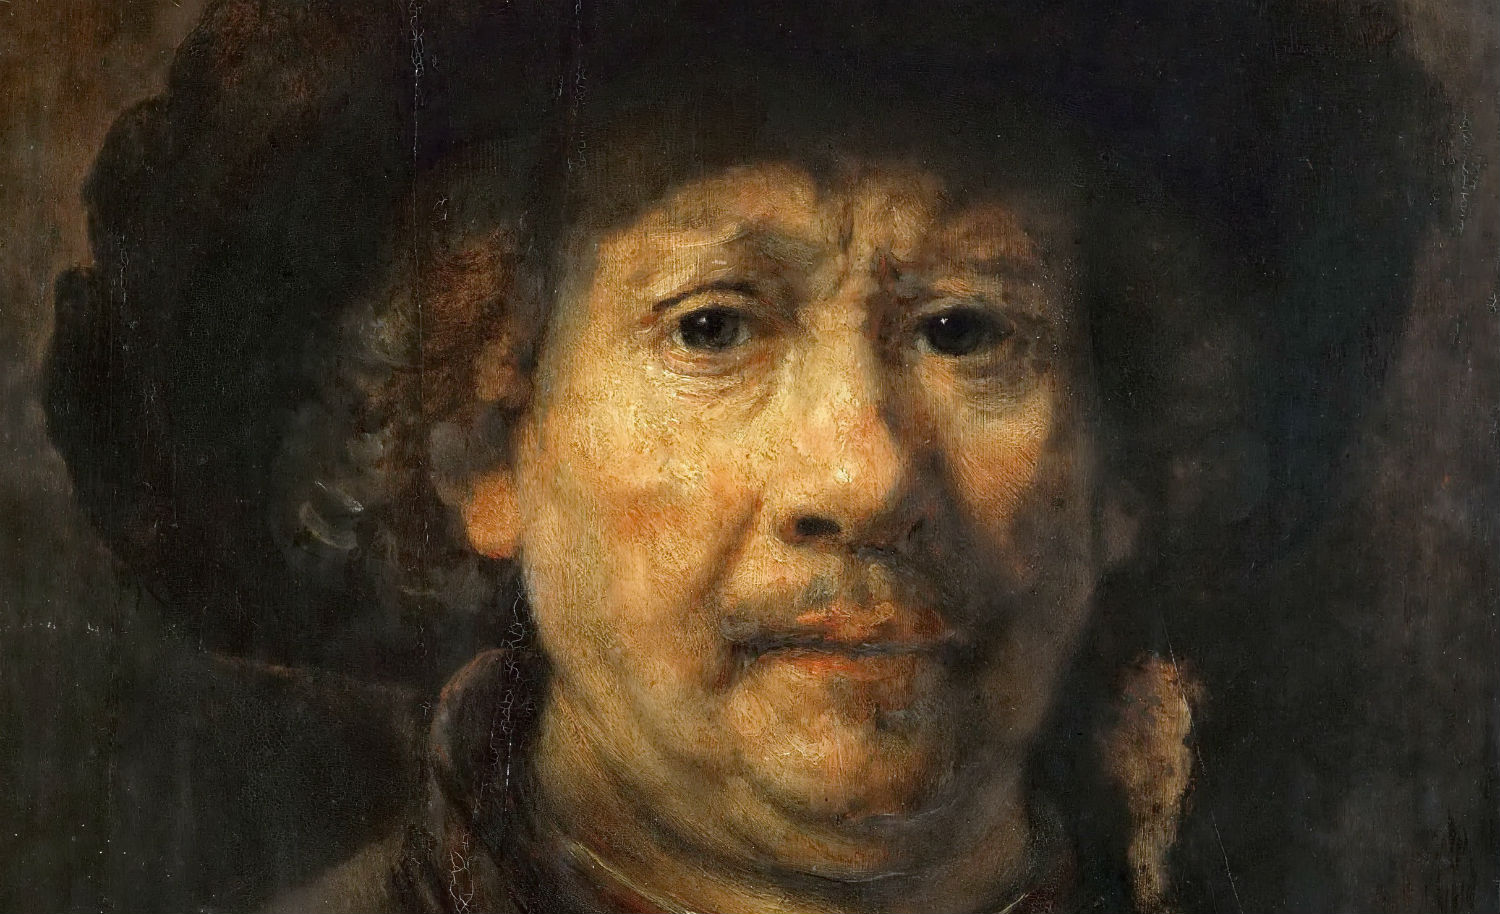 From Rembrandt's Self-portrait with Beret, 1655. Wikimedia.